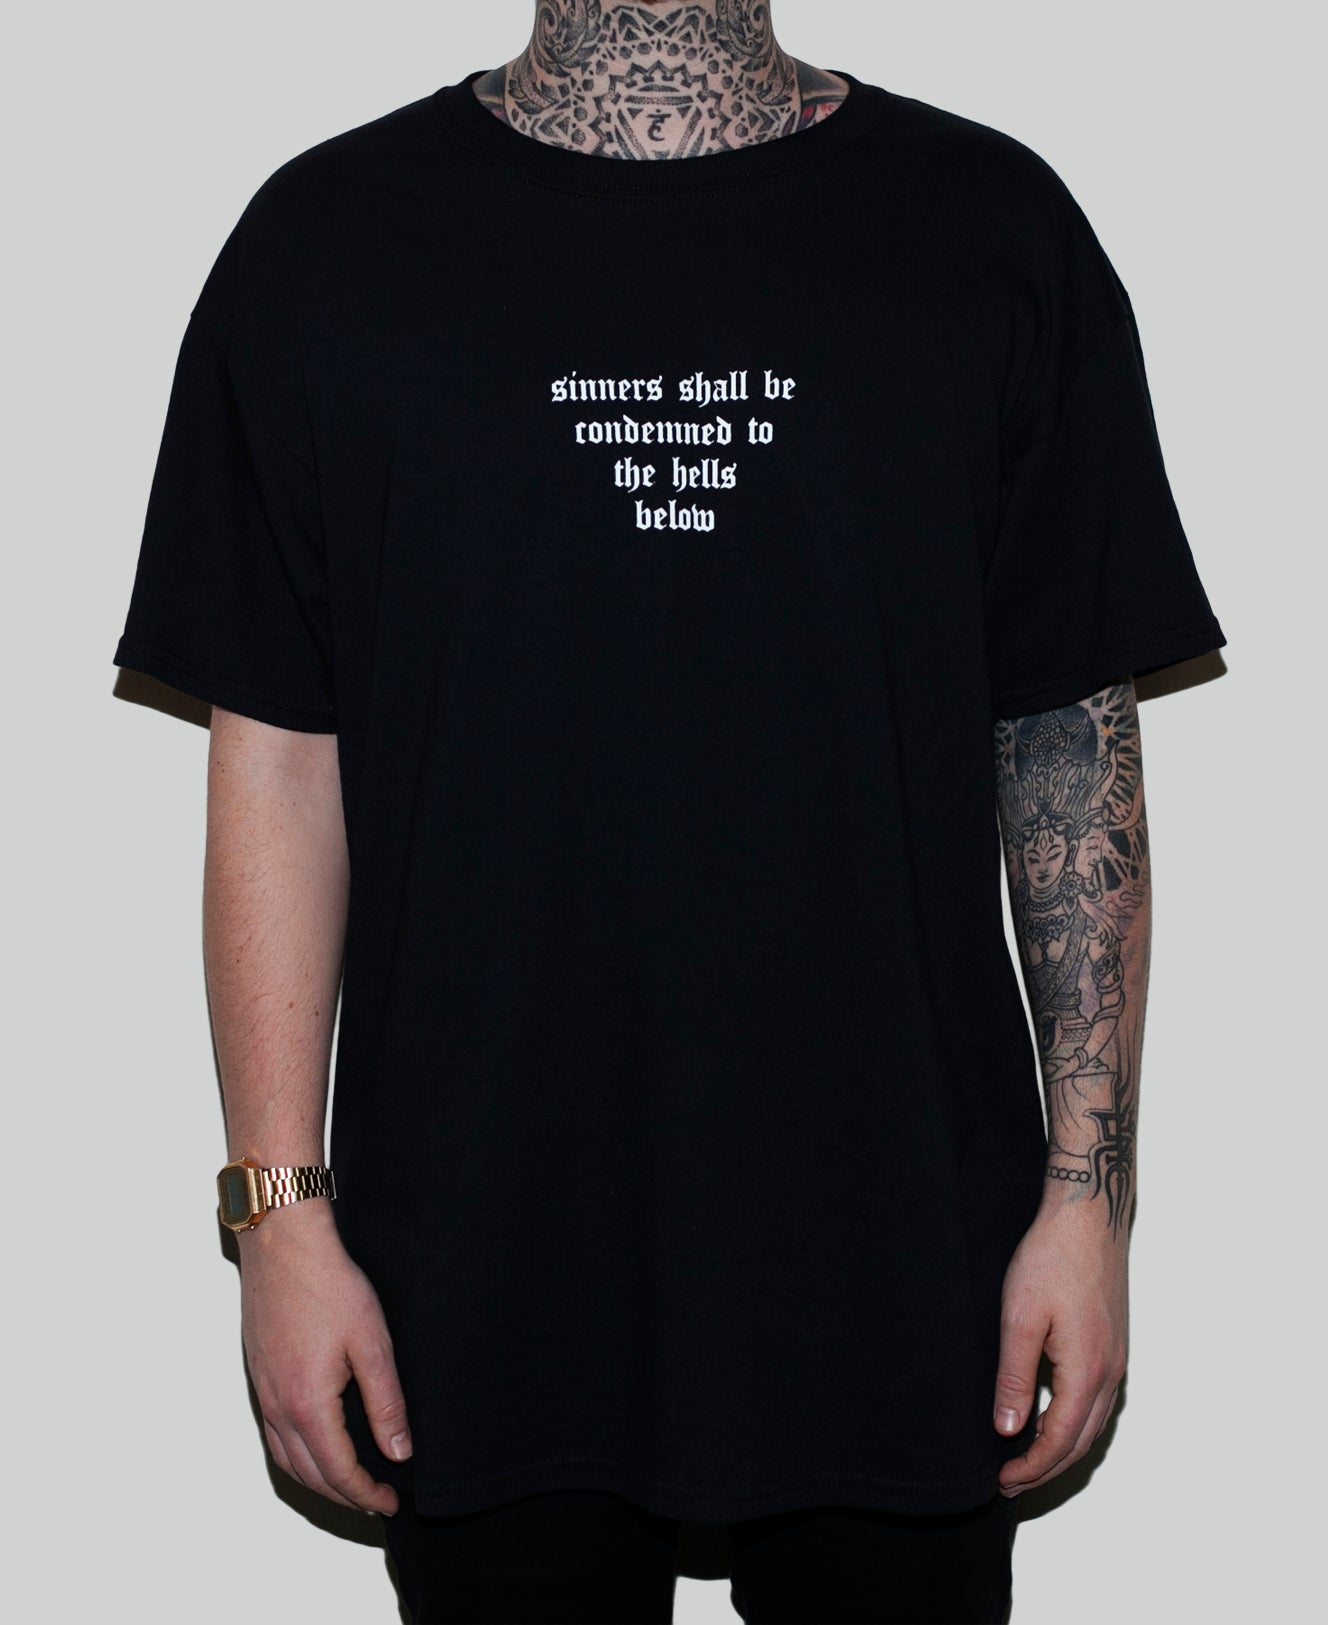 Sinners Tee - The Anti Life Ltd